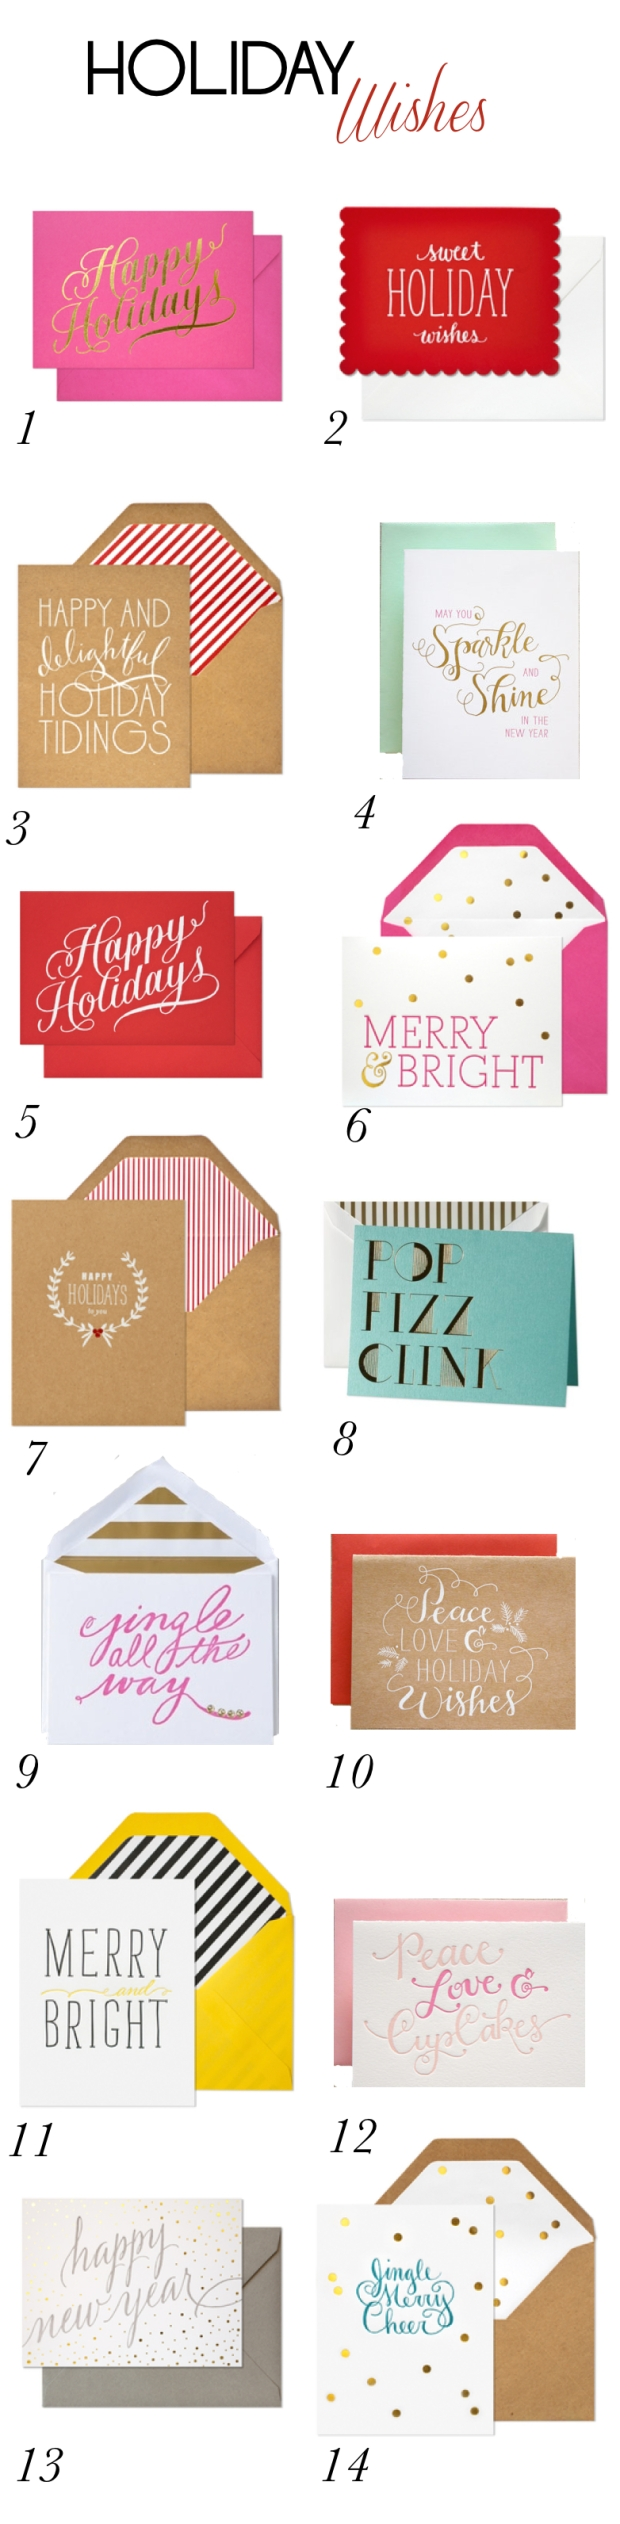 Holiday Wishes - Chic Holiday Cards